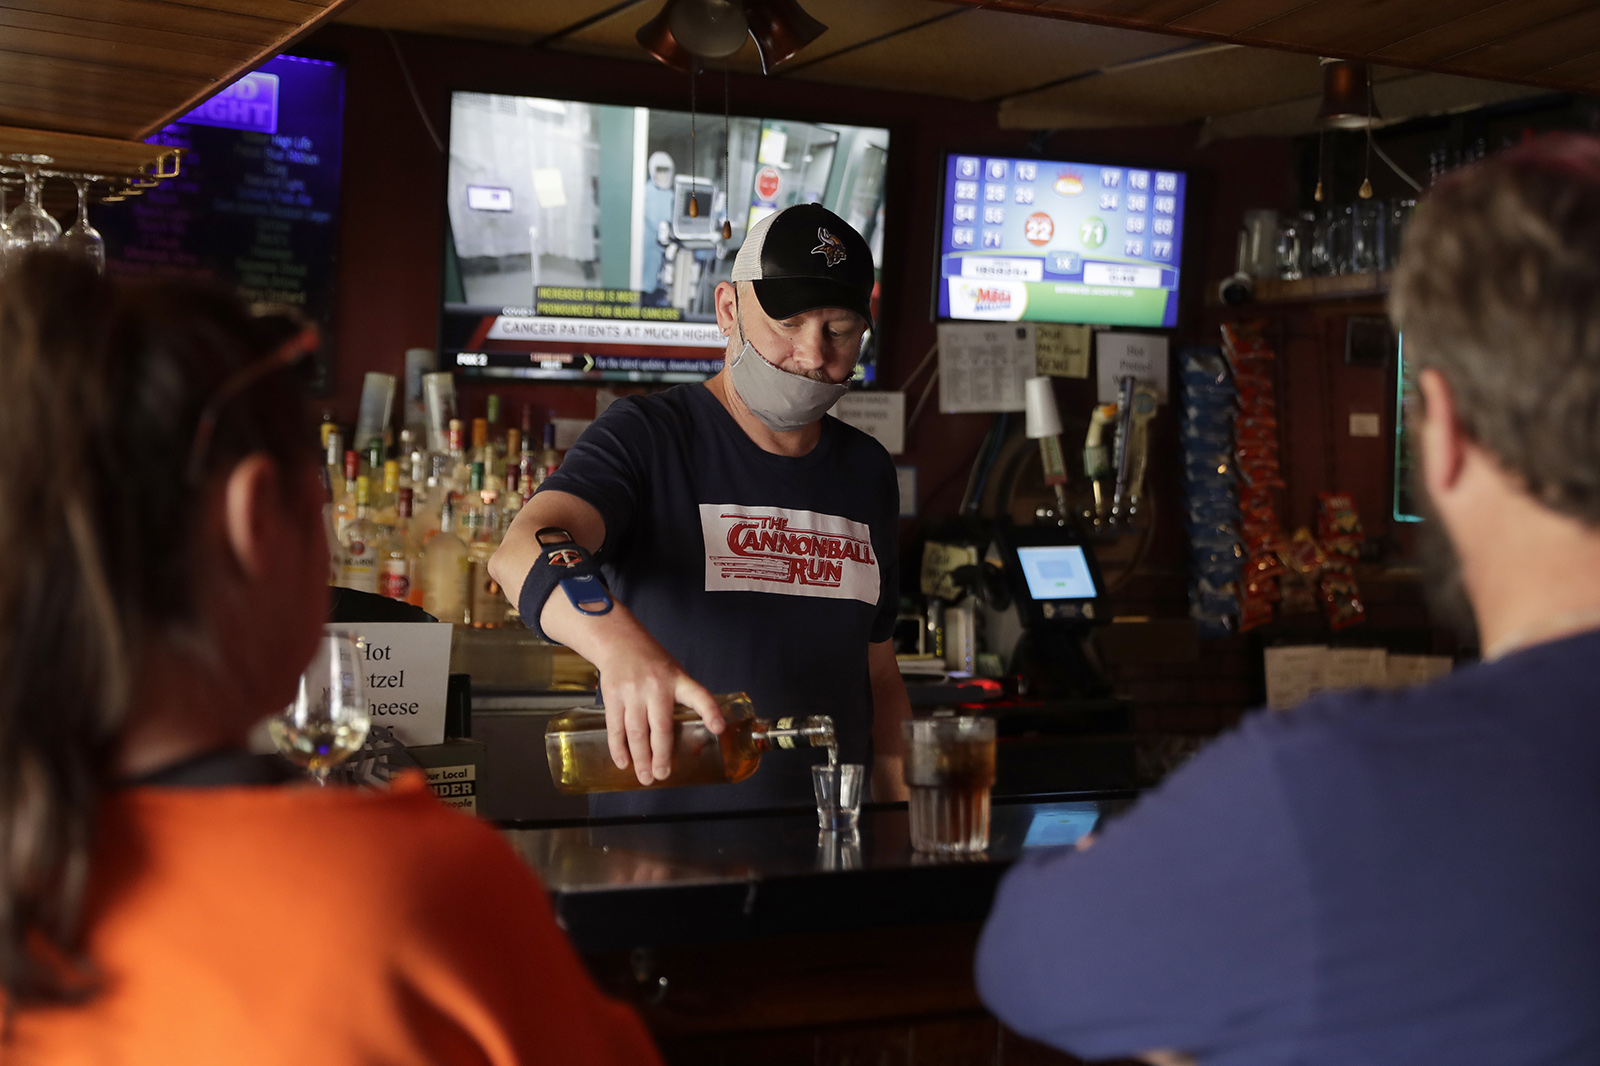 Bartender Greg Anderson pours drinks for customers in May, on the first day Tuner's Bar and Grill reopened in St. Charles, Missouri.